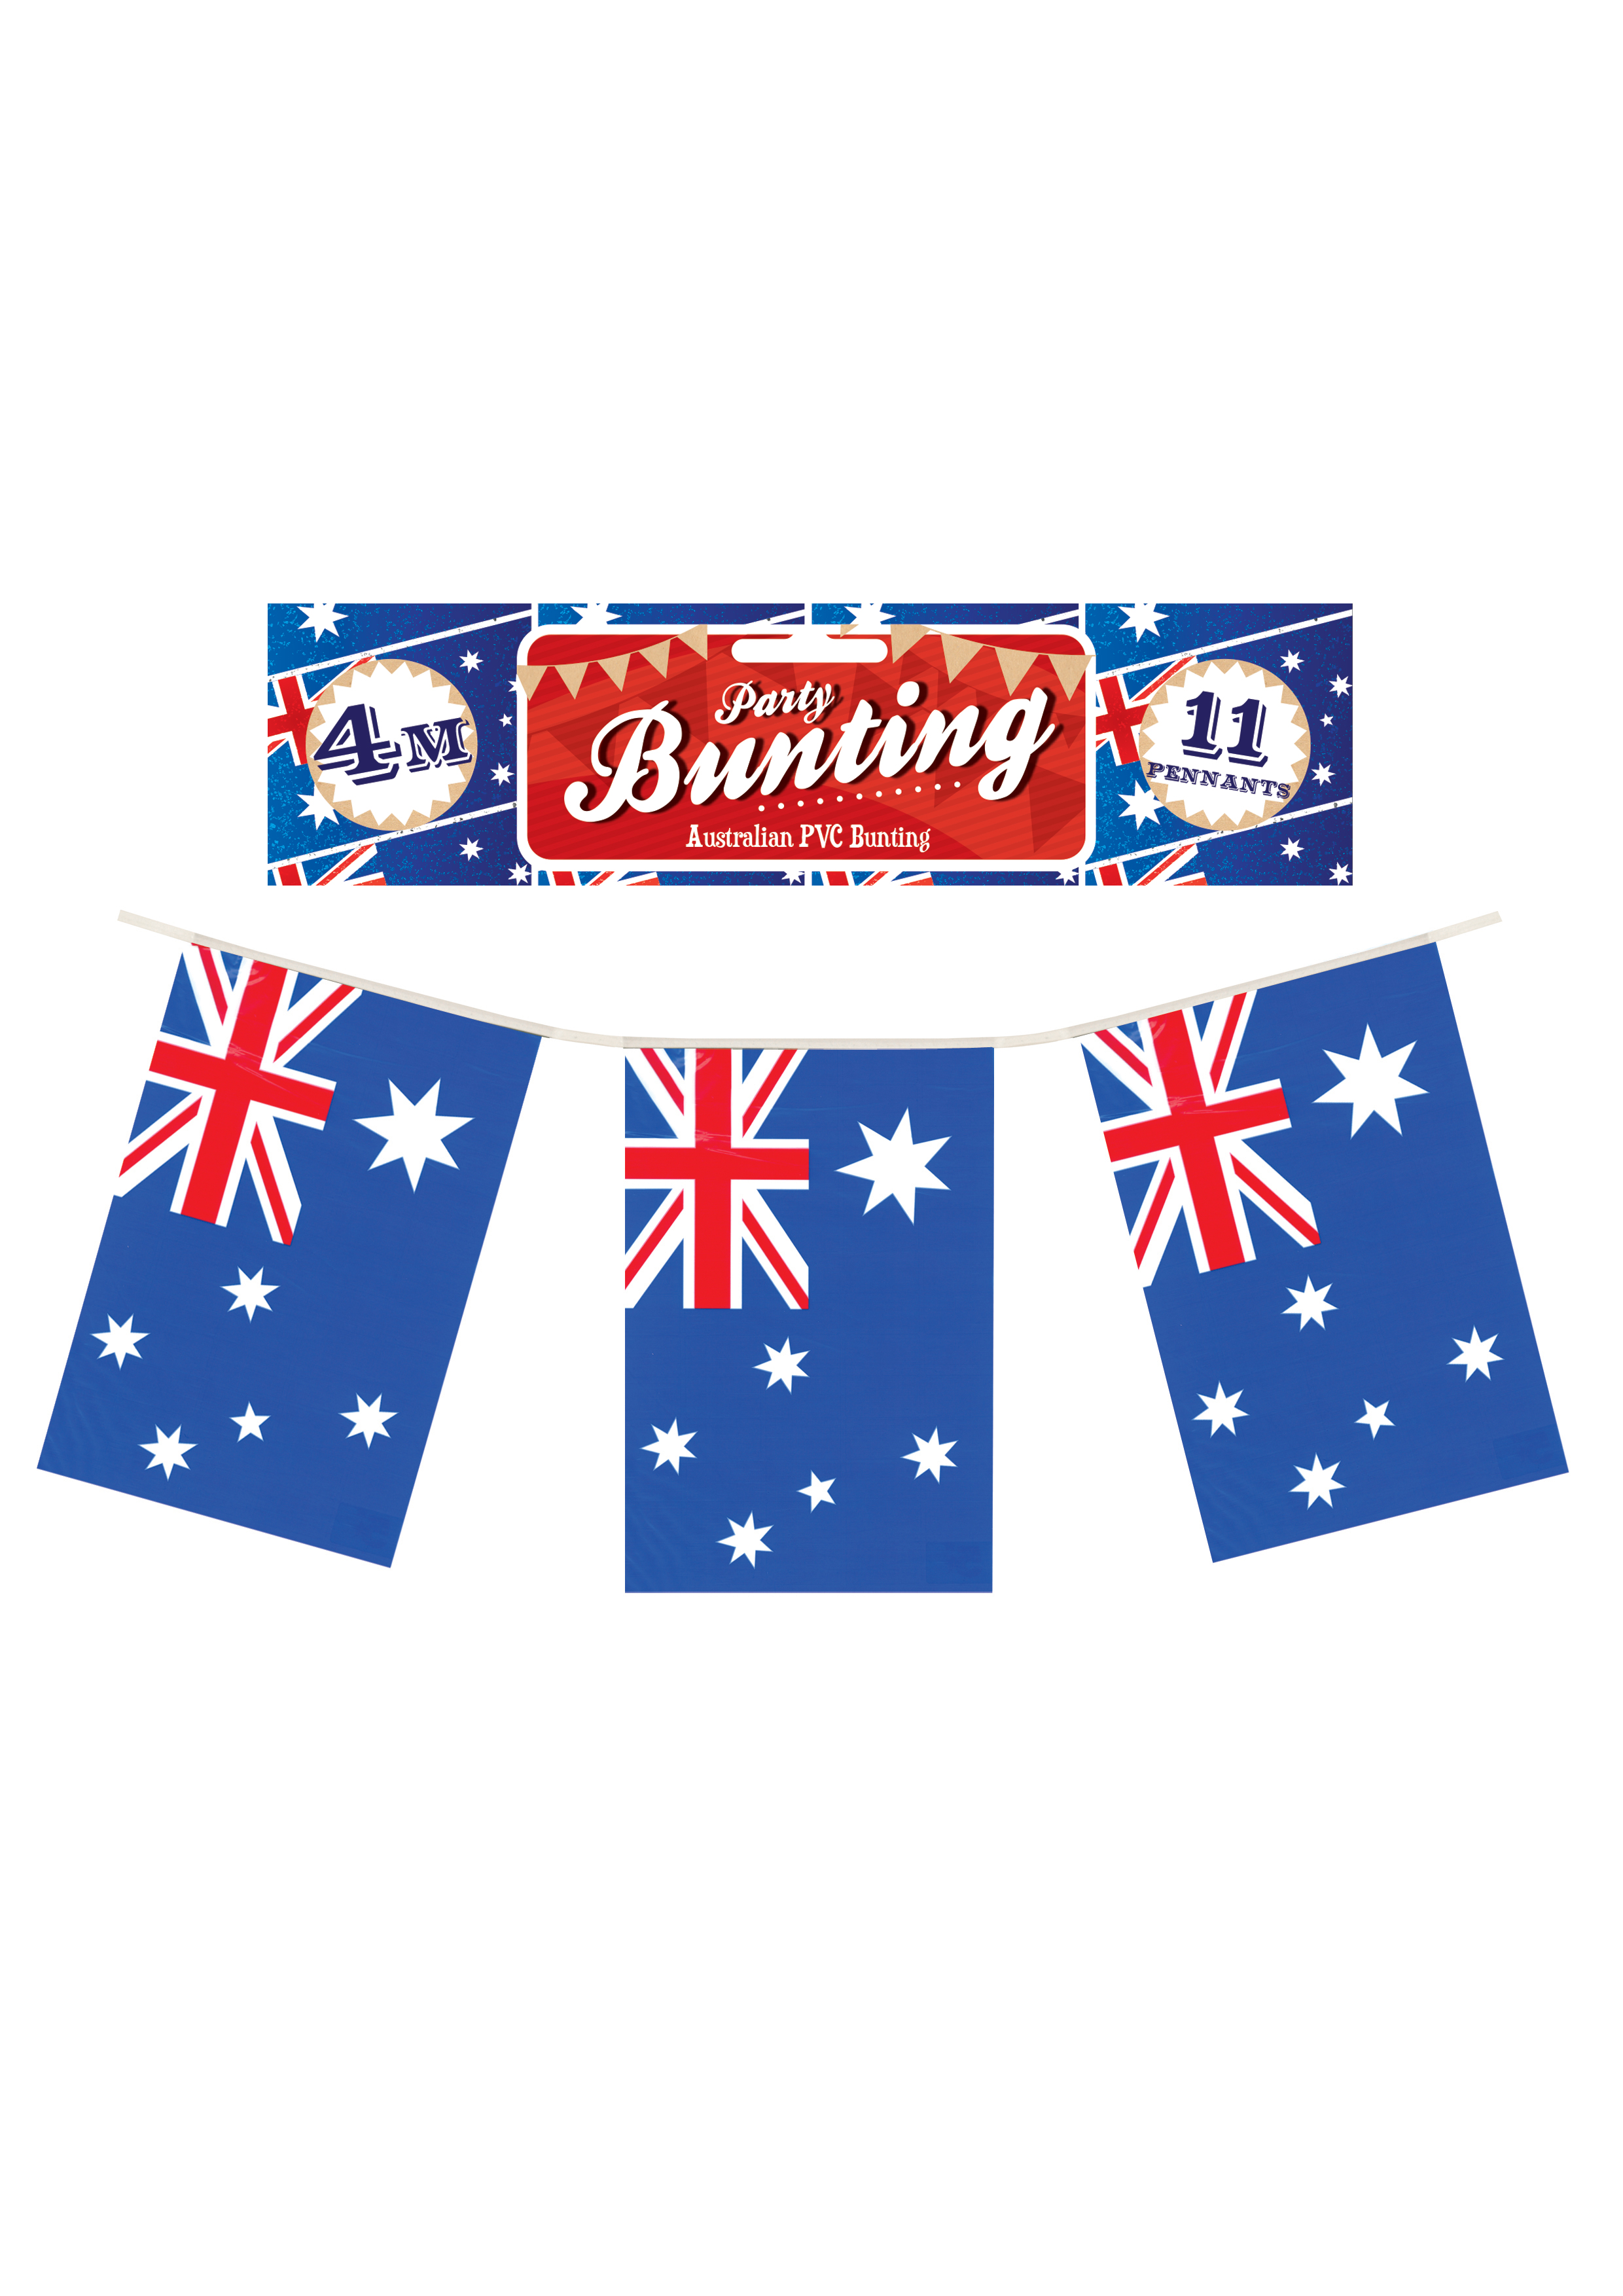 Australian Flag Bunting 4m (11 Flags)